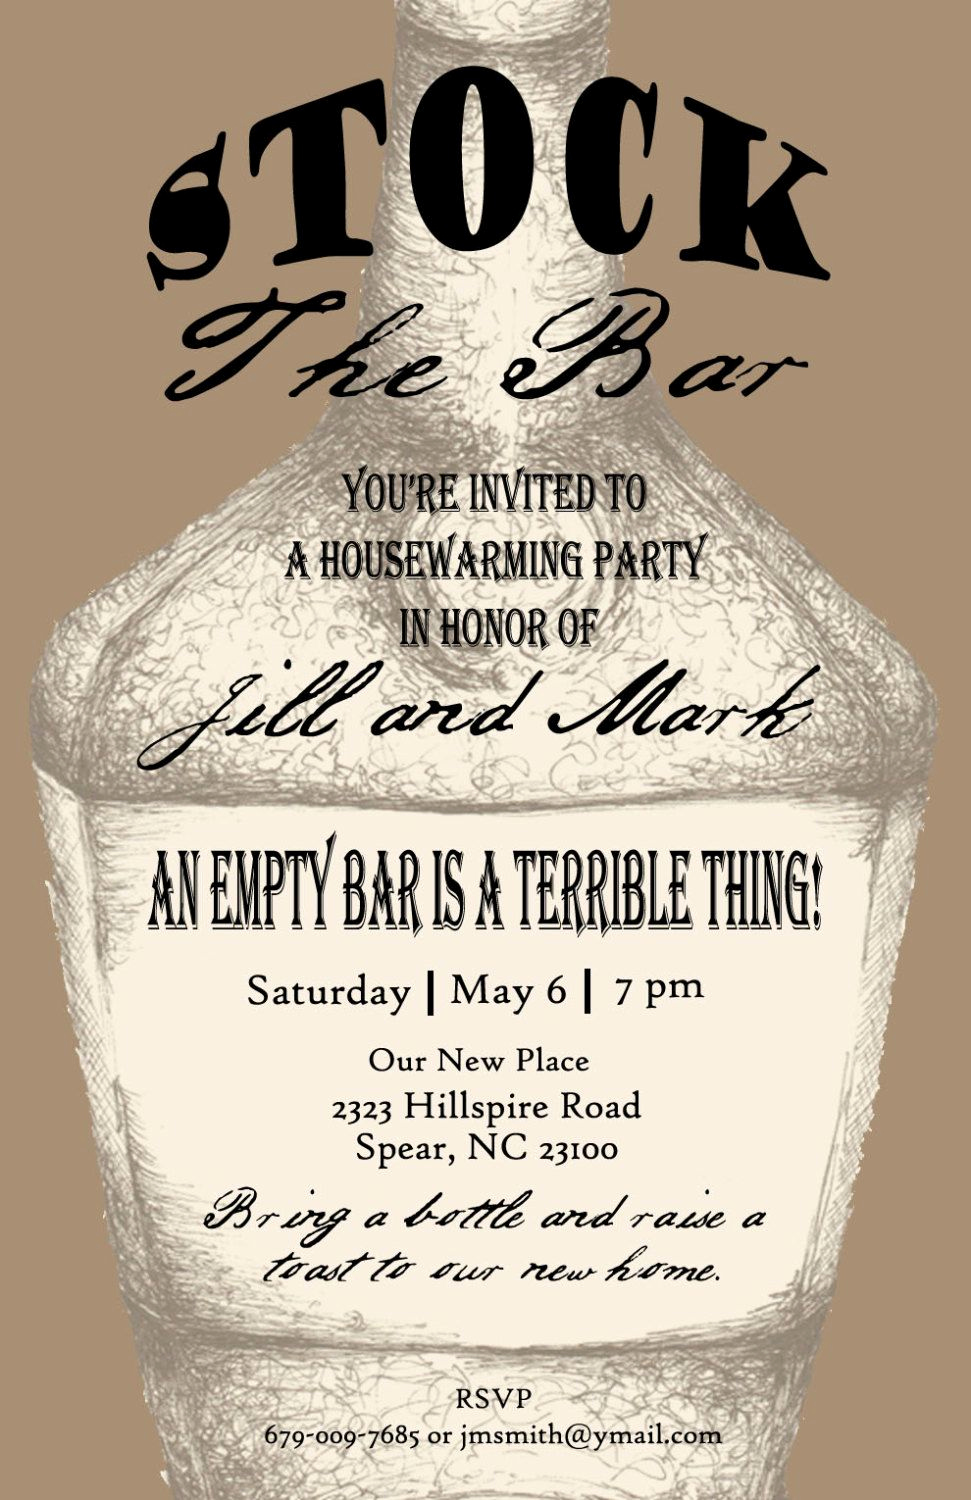 Housewarming Party Invitation Message Lovely Housewarming Party Invitations for Guy Google Search